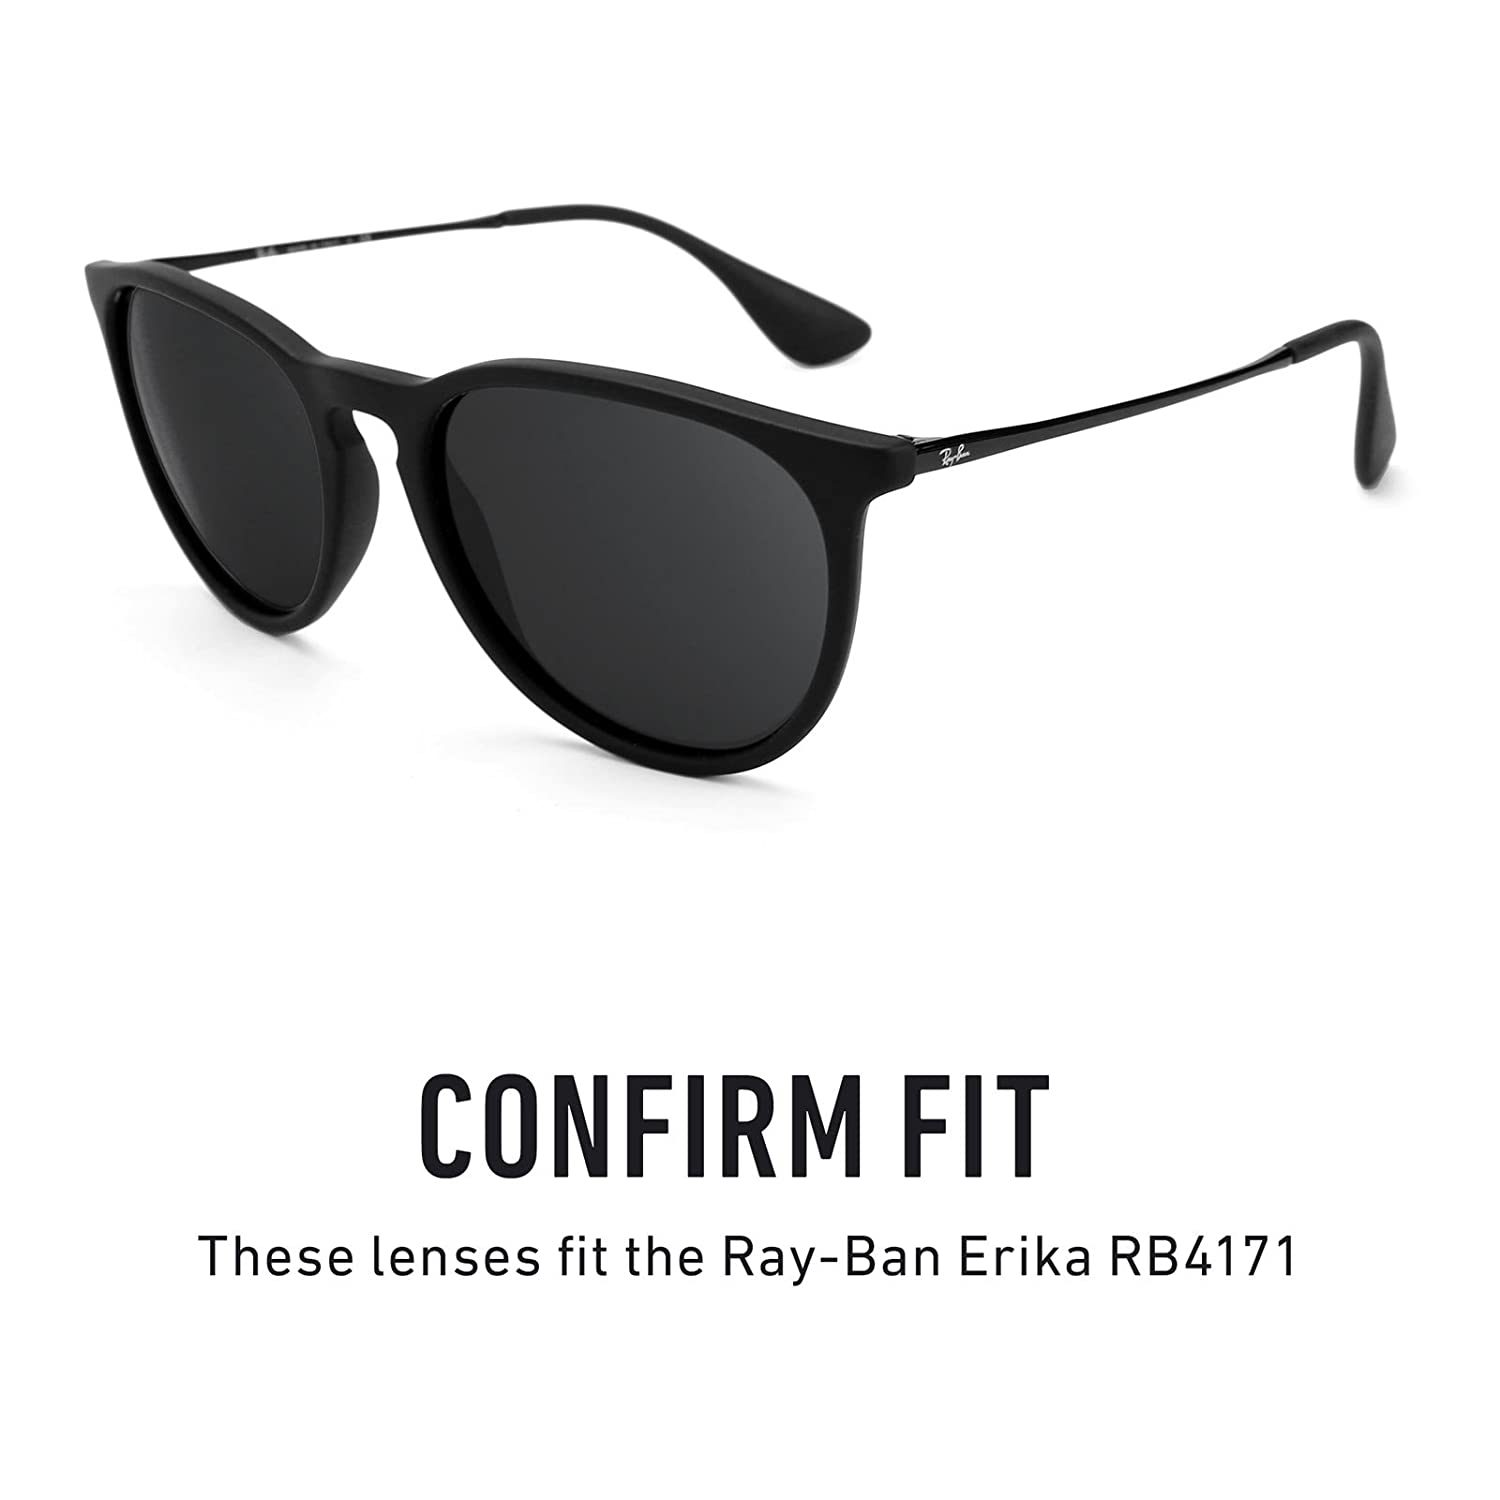 7f9387997f8 Revant Replacement Lenses for Ray-Ban Erika RB4171 Elite Adapt Grey  Photochromic  Amazon.co.uk  Clothing